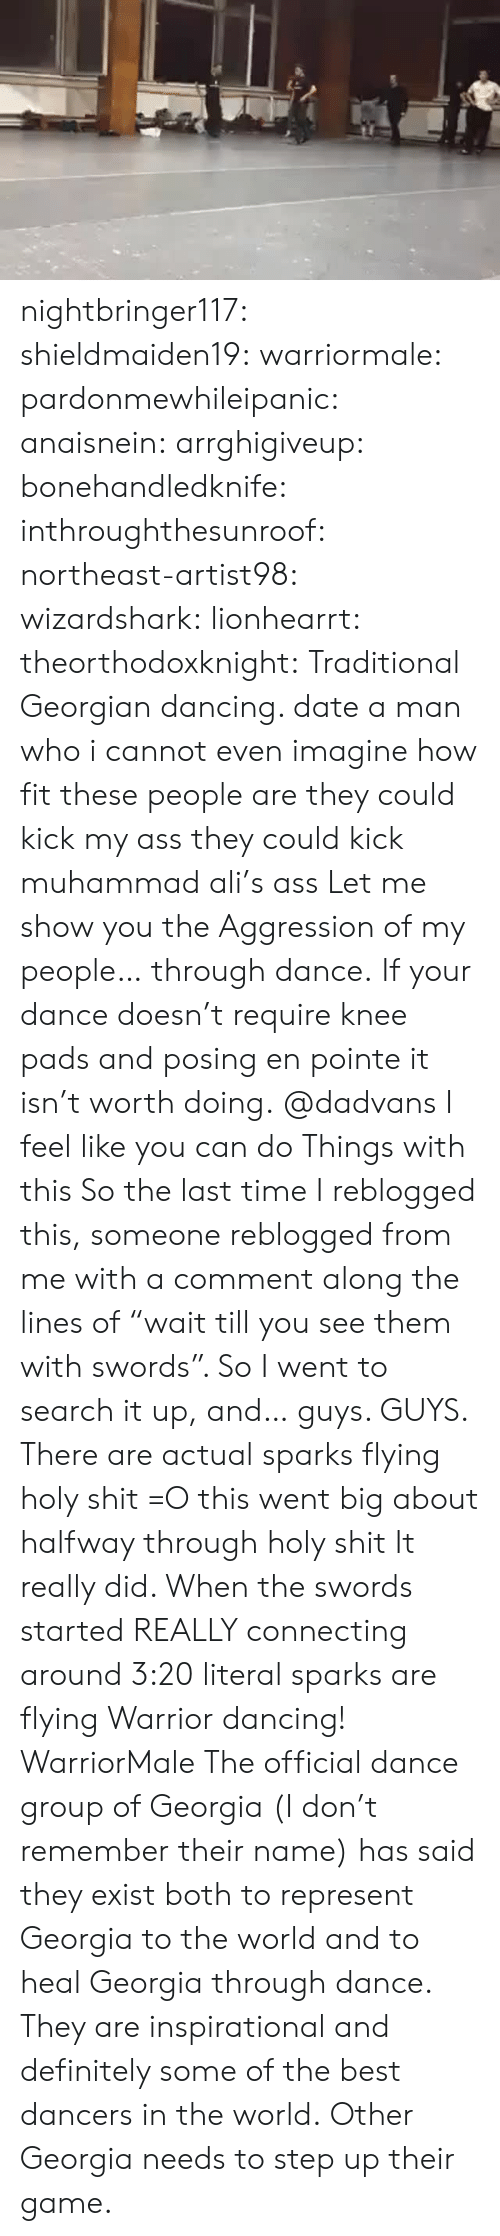 "Ali, Ass, and Dancing: nightbringer117:  shieldmaiden19:  warriormale:  pardonmewhileipanic:  anaisnein:  arrghigiveup:   bonehandledknife:  inthroughthesunroof:  northeast-artist98:  wizardshark:  lionhearrt:  theorthodoxknight: Traditional Georgian dancing.  date a man who  i cannot even imagine how fit these people are they could kick my ass they could kick muhammad ali's ass  Let me show you the Aggression of my people… through dance.   If your dance doesn't require knee pads and posing en pointe it isn't worth doing.  @dadvans I feel like you can do Things with this  So the last time I reblogged this, someone reblogged from me with a comment along the lines of ""wait till you see them with swords"". So I went to search it up, and… guys. GUYS. There are actual sparks flying holy shit =O   this went big about halfway through holy shit   It really did. When the swords started REALLY connecting around 3:20 literal sparks are flying   Warrior dancing! WarriorMale   The official dance group of Georgia (I don't remember their name) has said they exist both to represent Georgia to the world and to heal Georgia through dance. They are inspirational and definitely some of the best dancers in the world.  Other Georgia needs to step up their game."